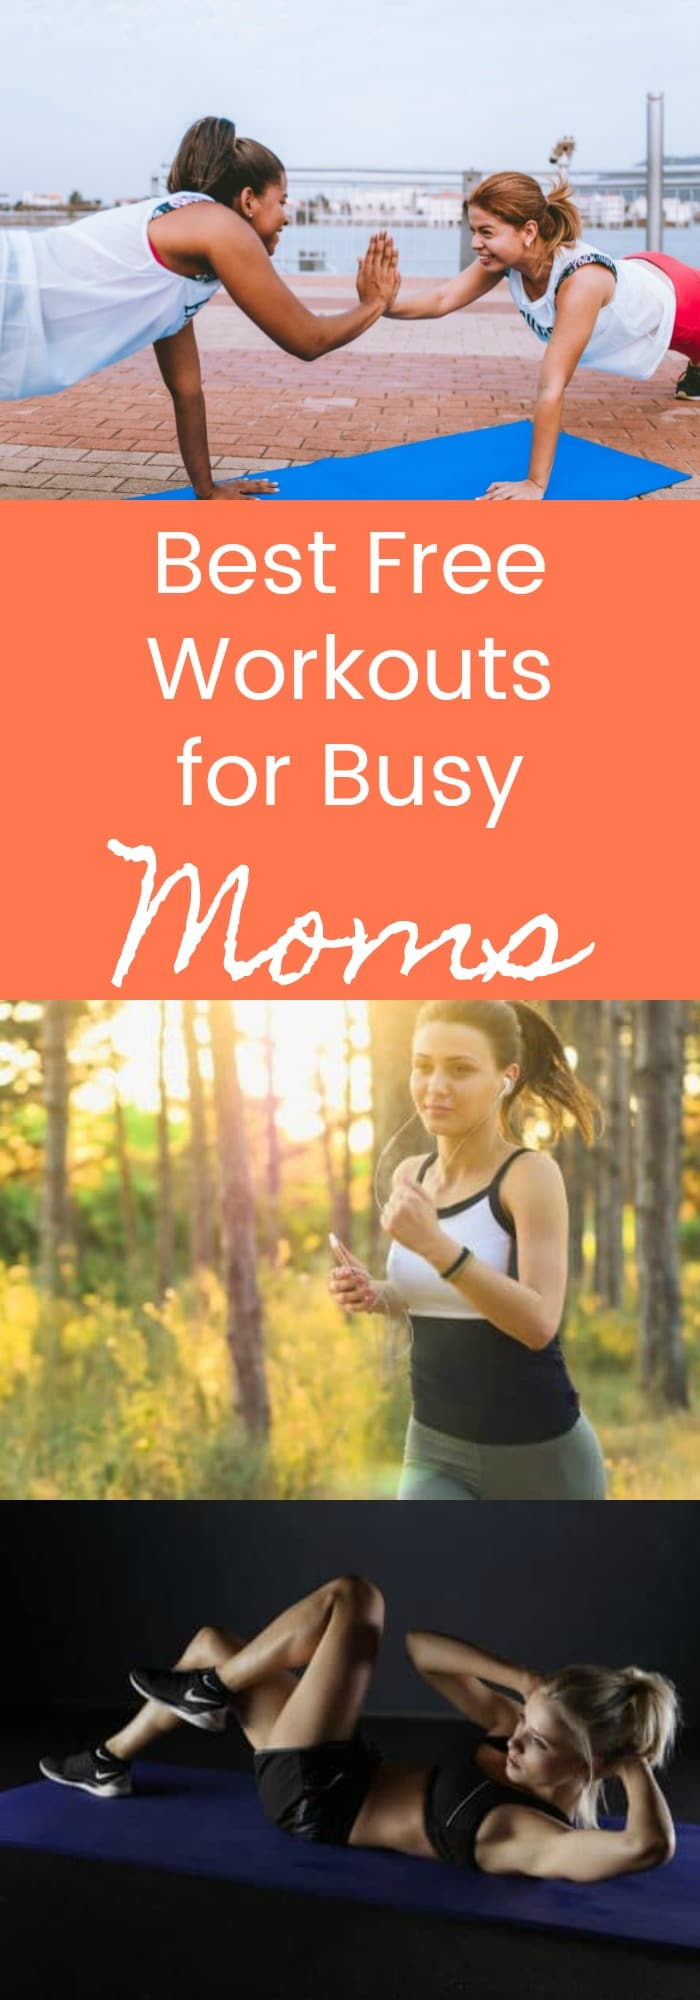 Best Free Workouts for Busy Moms